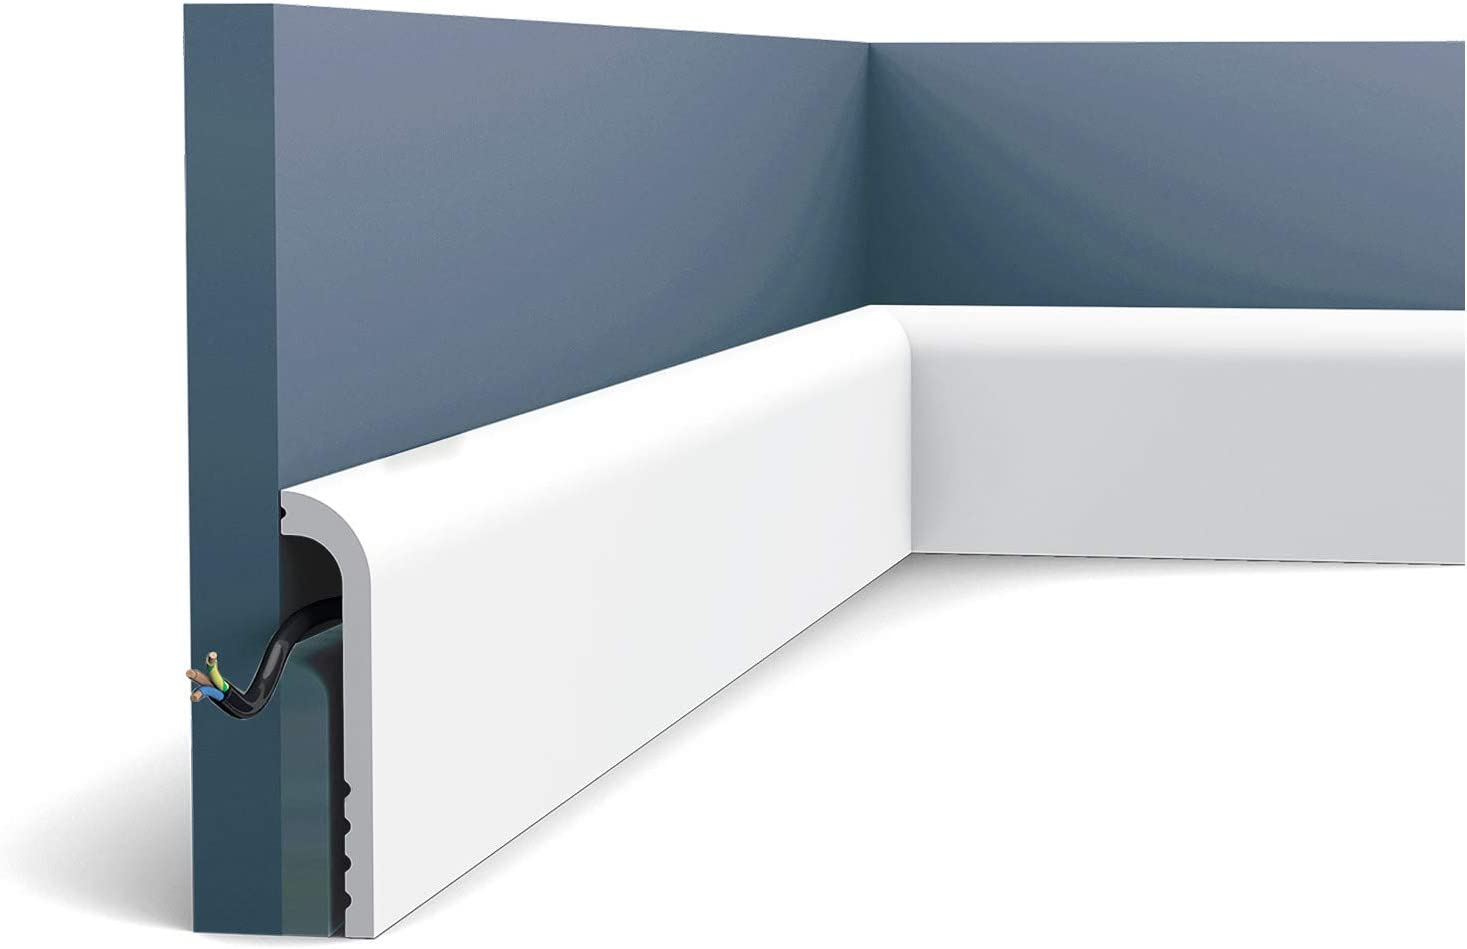 Skirting Orac Decor SX185 LUXXUS Cascade Cover skirting Decorative Moulding Modern Look White 2m